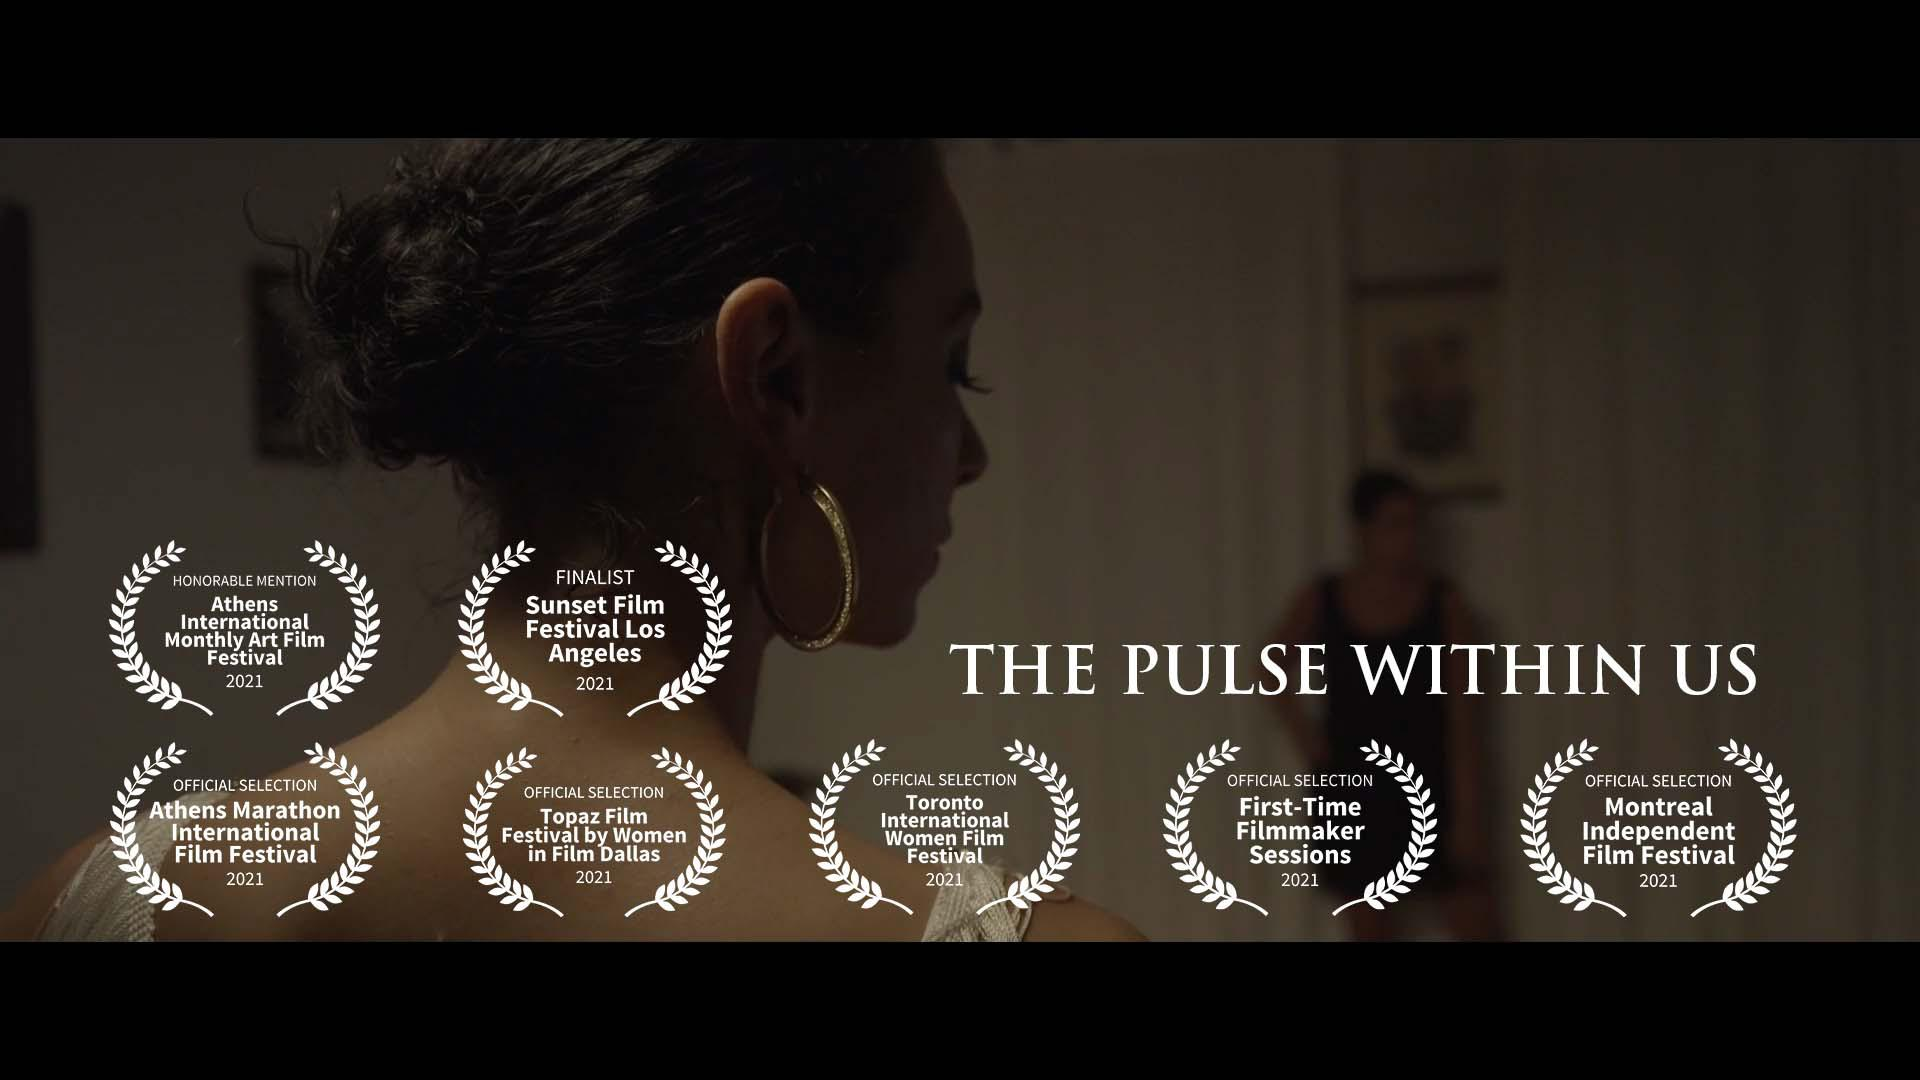 The Pulse Within Us